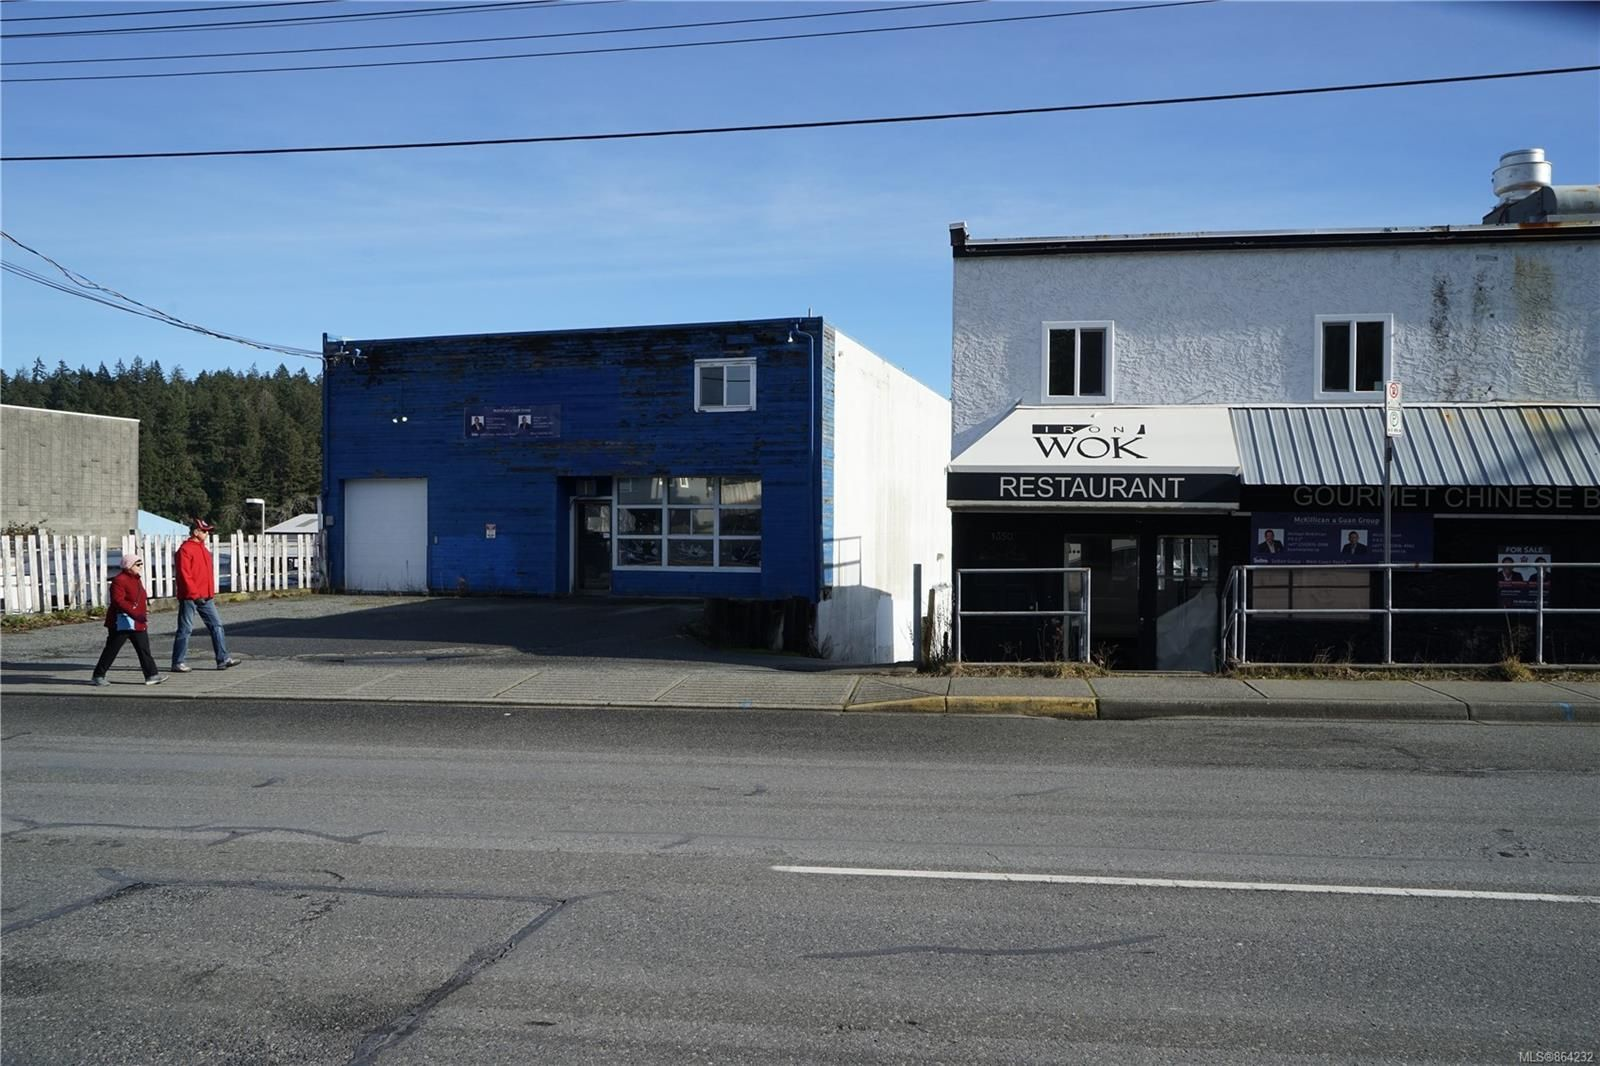 Photo 9: Photos: 1340-1370 Stewart Ave in : Na Brechin Hill Mixed Use for sale (Nanaimo)  : MLS®# 864232